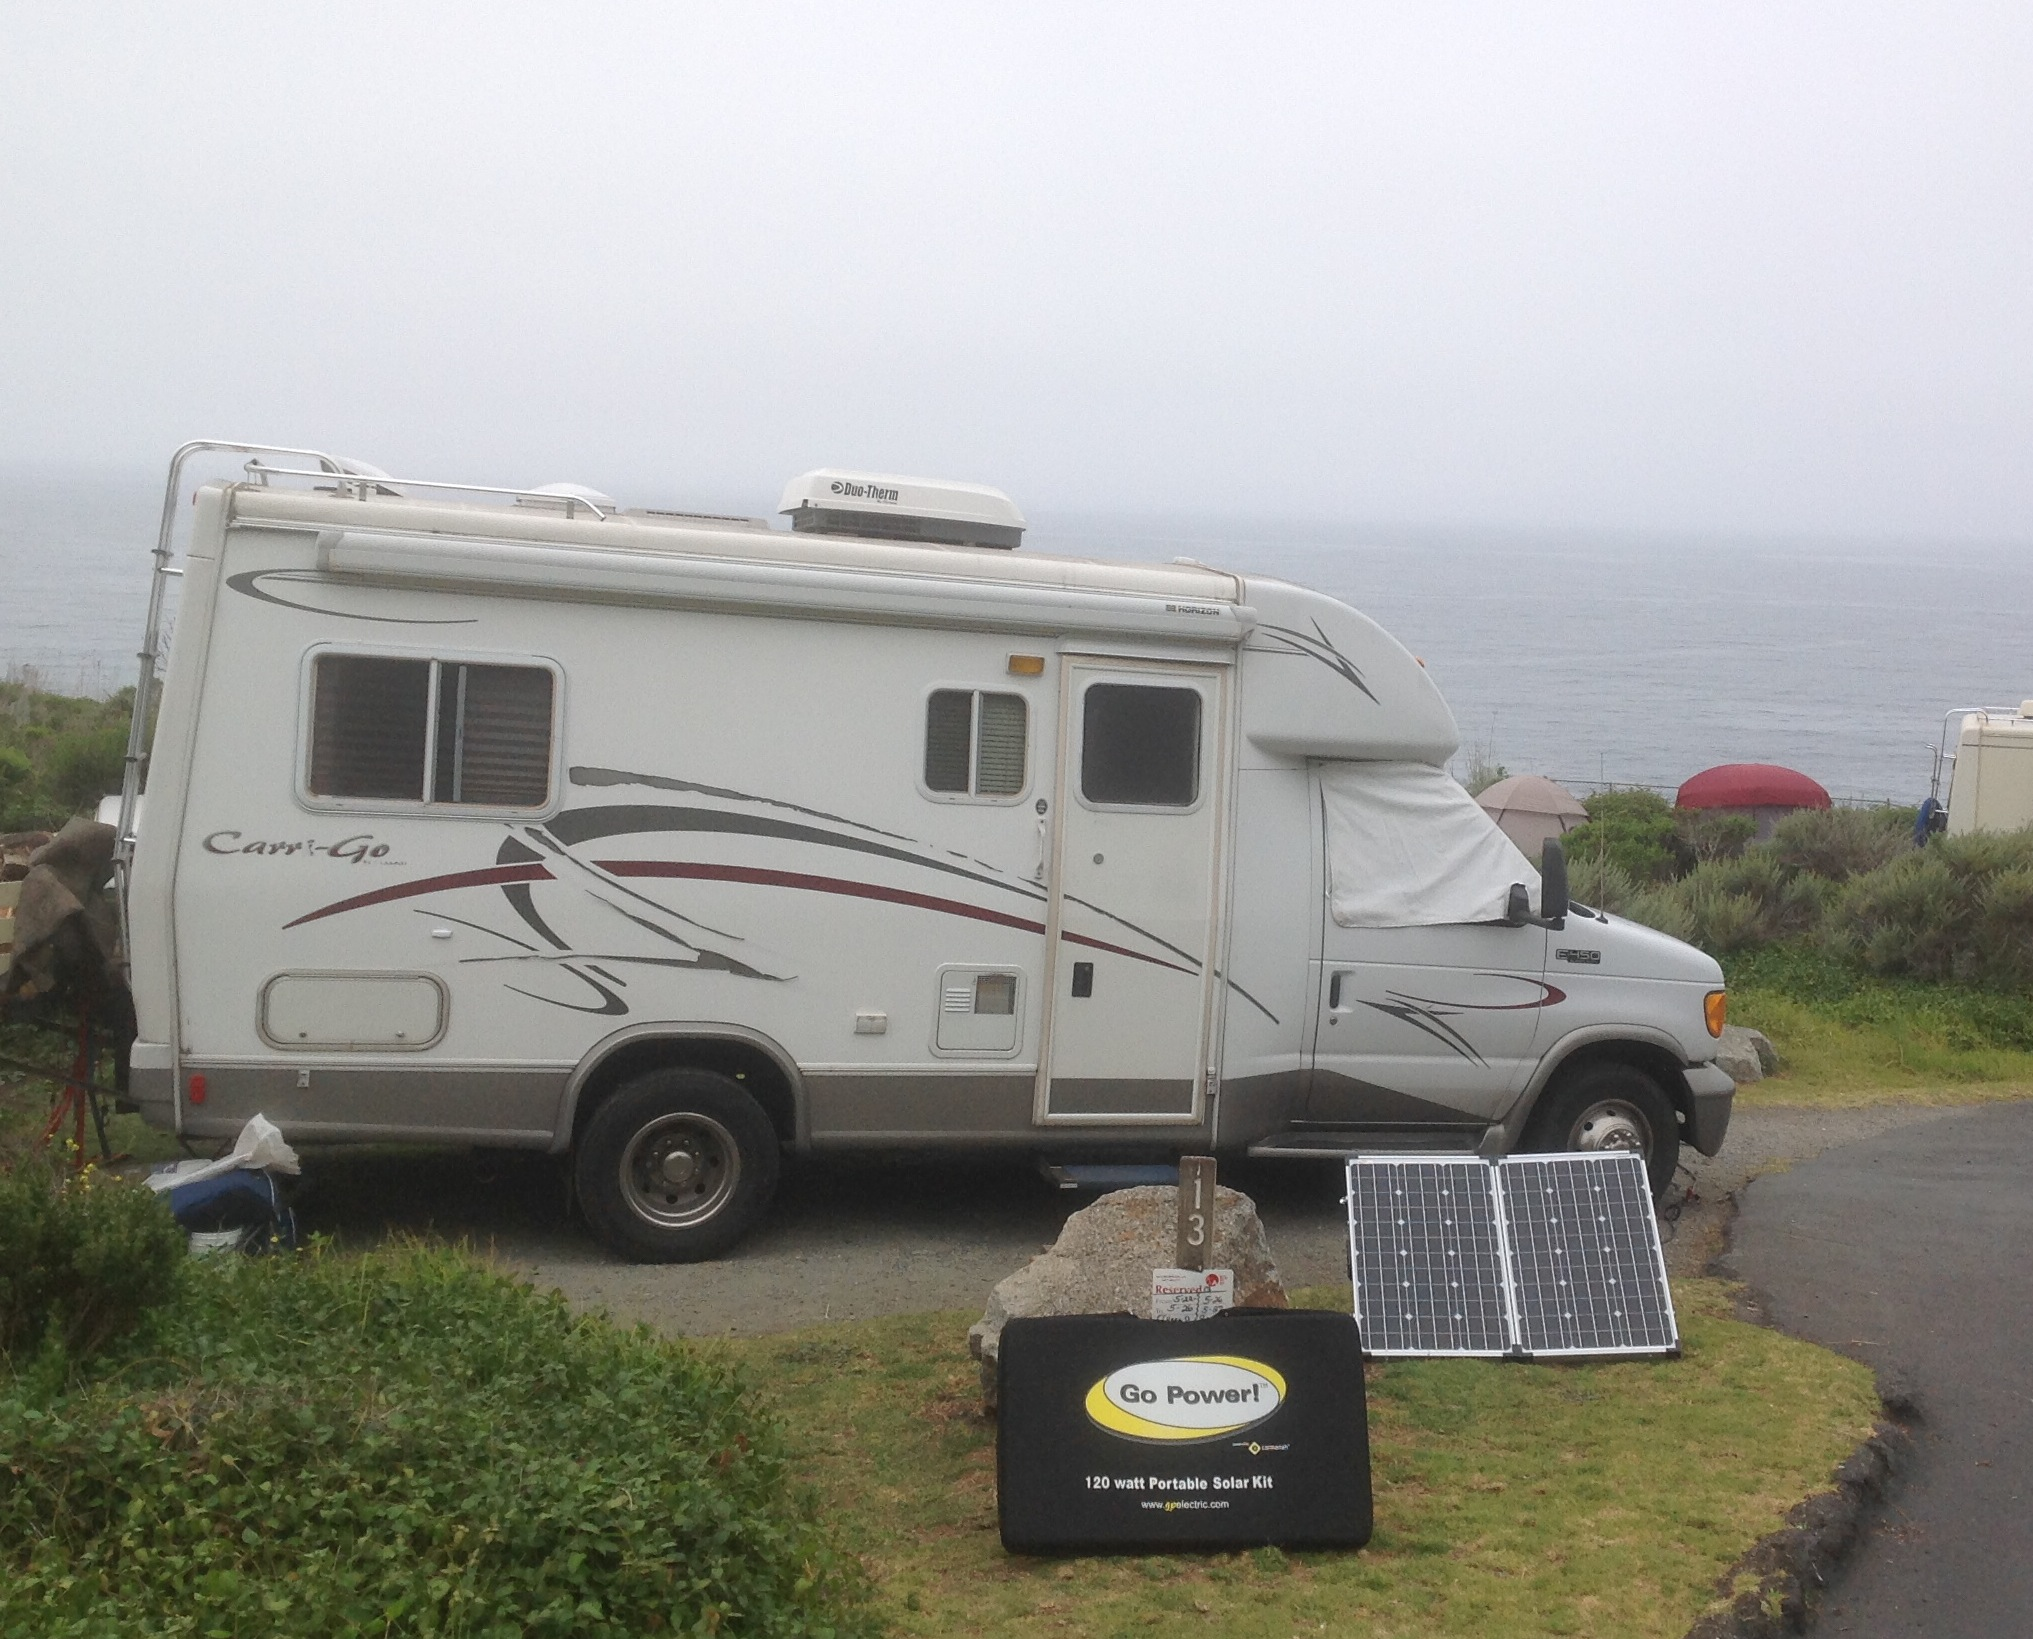 Every RV should have a PORTABLE solar panel.